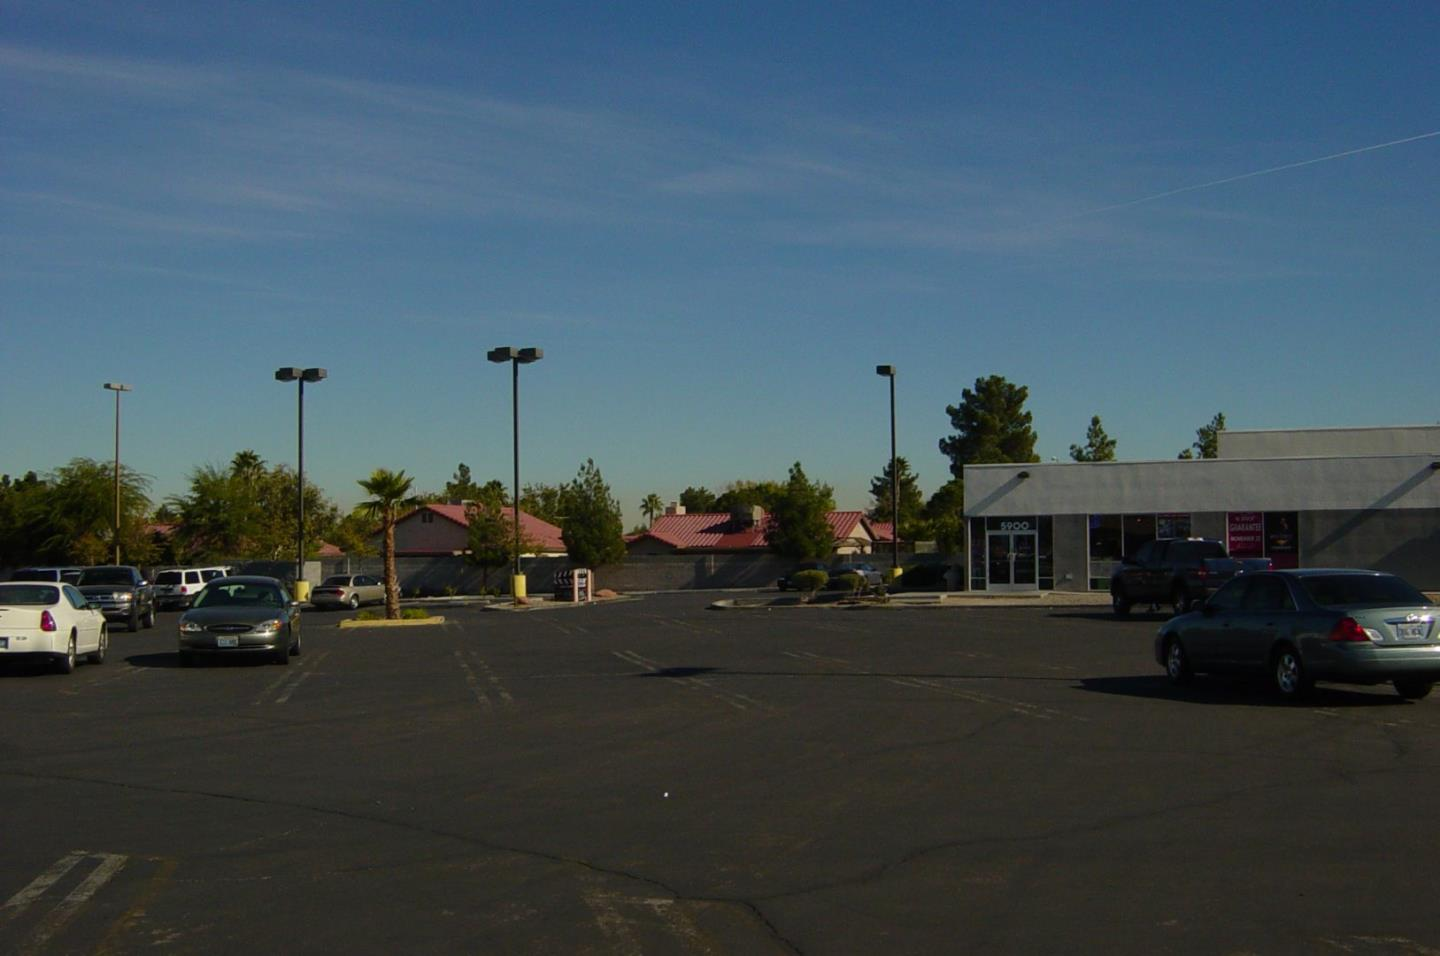 NEC NEC of Jones & Cheyenne, LAS VEGAS, NV 89108